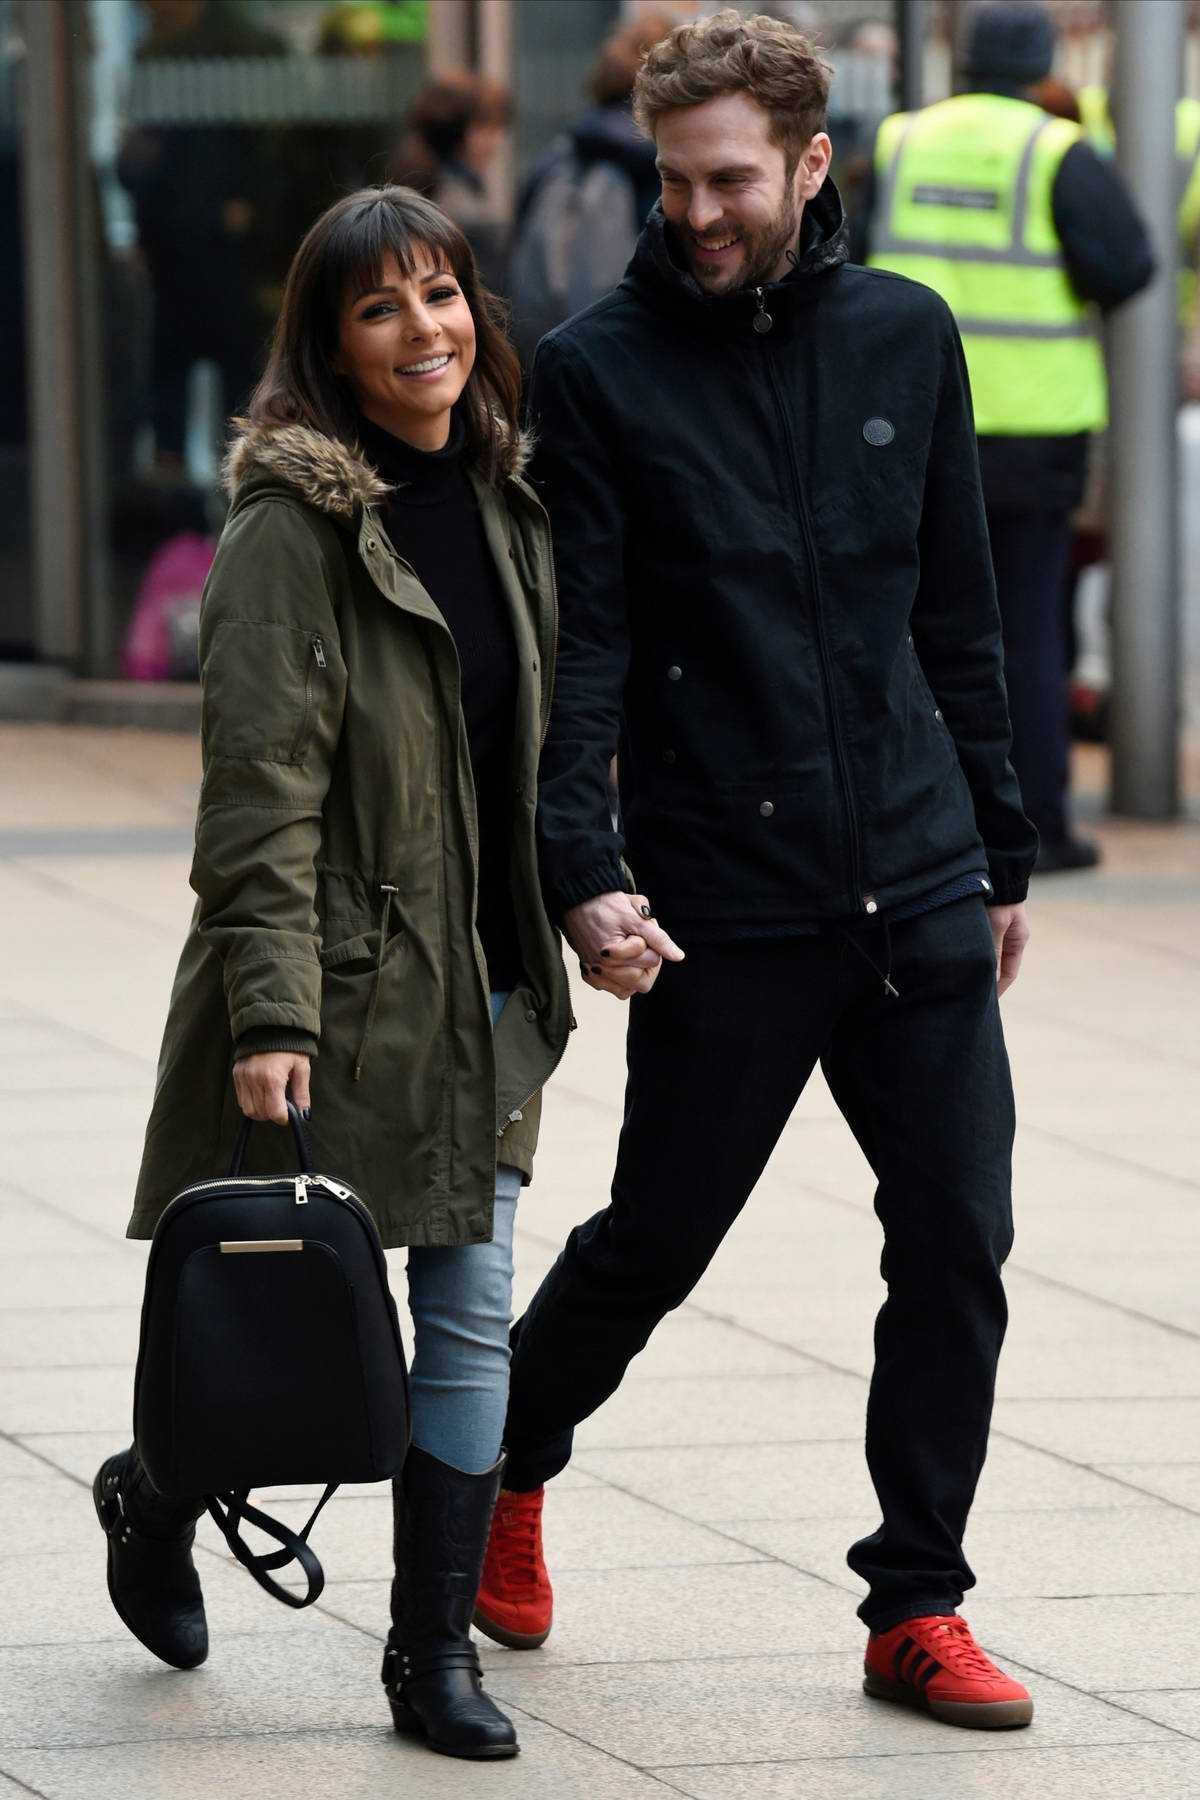 Roxanne Pallett share a kiss with new boyfriend Lee Walton while out on a date in Manchester, UK